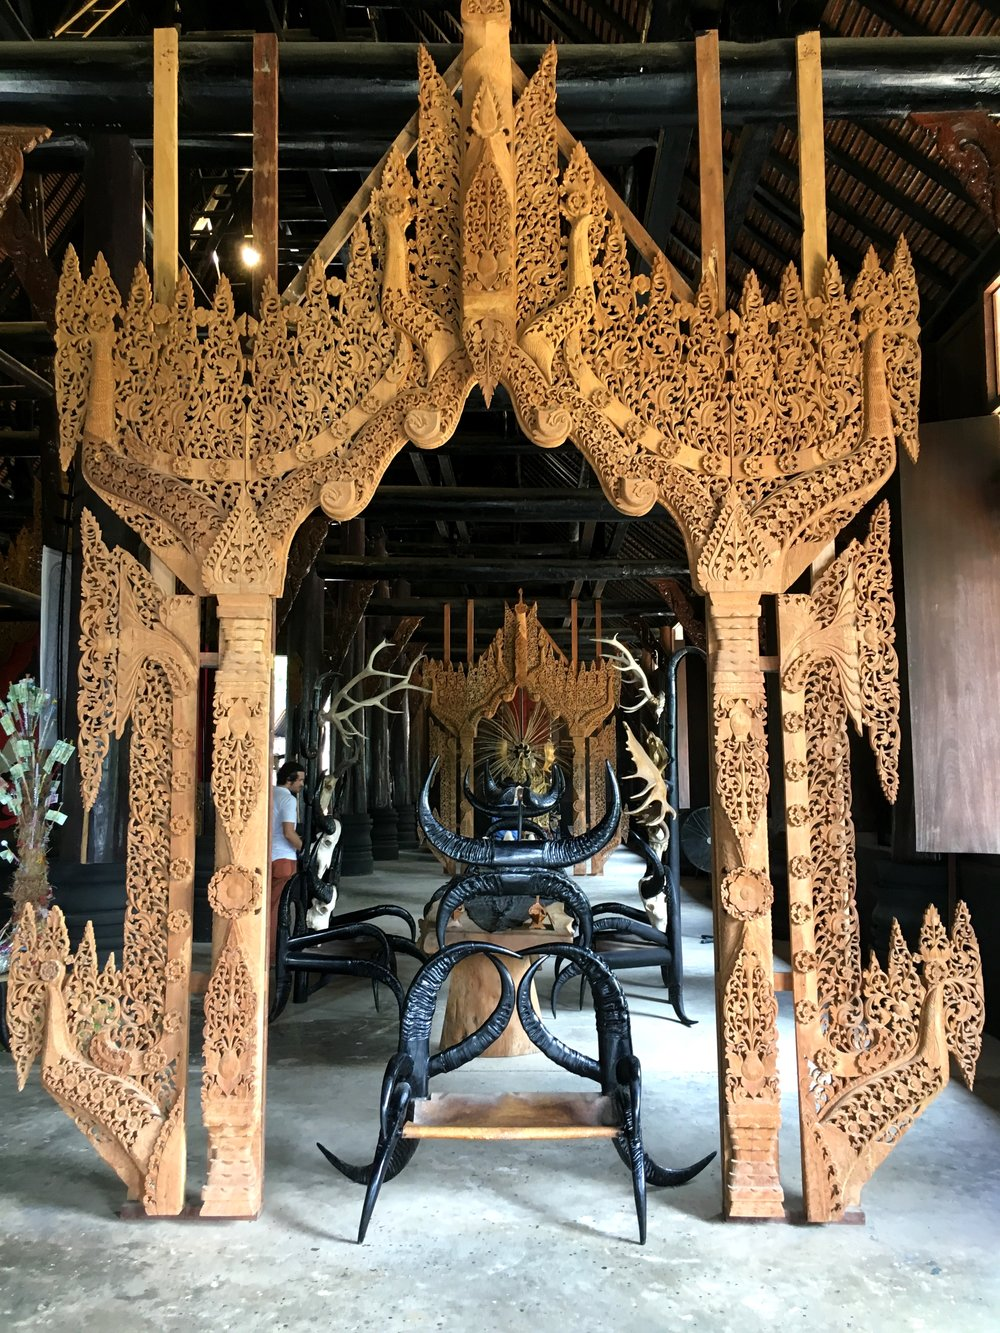 A throne made of animal skins and horns